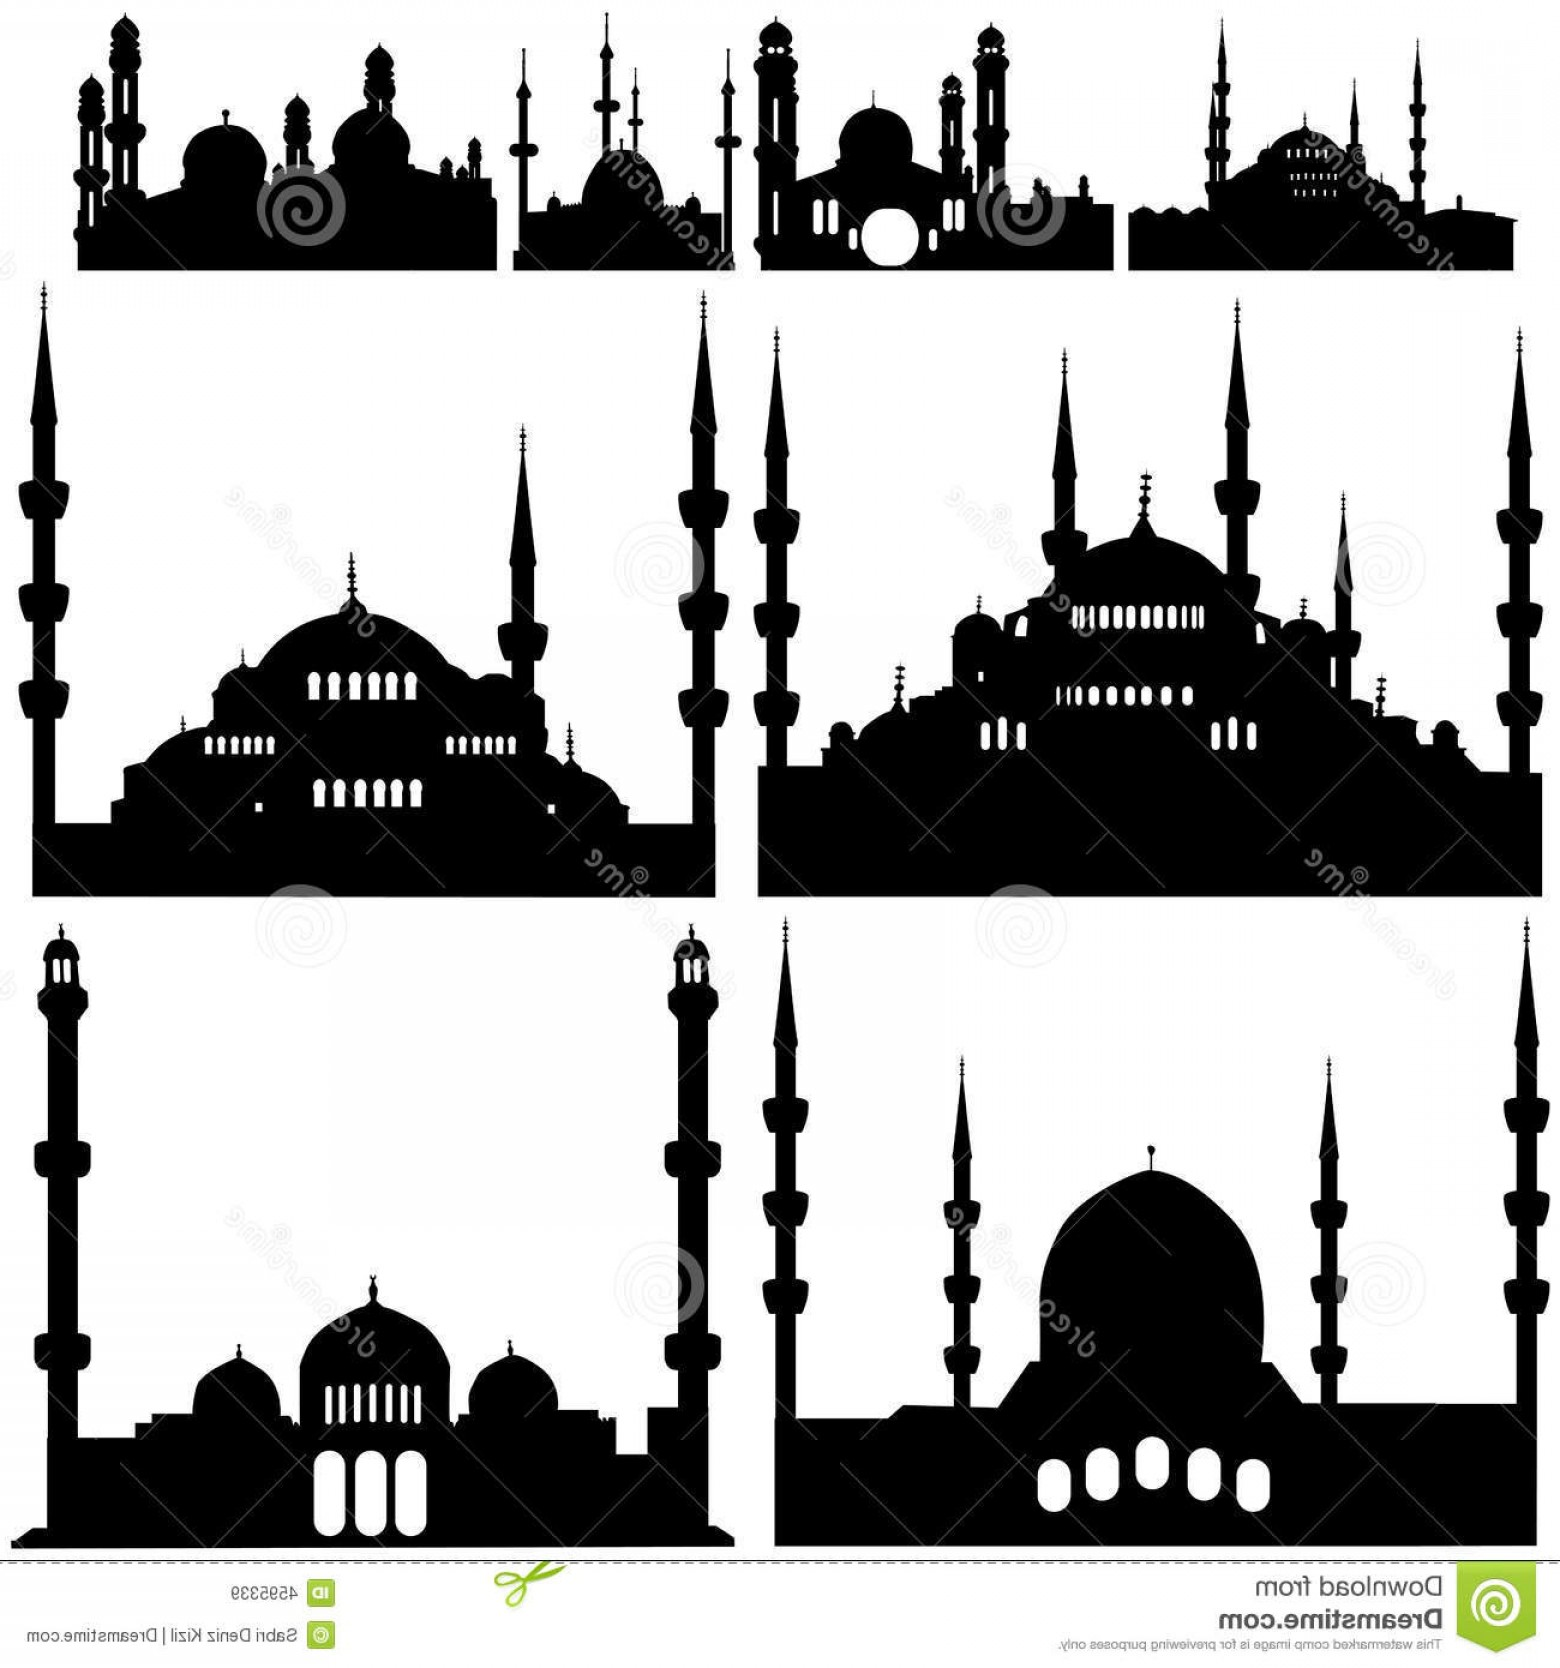 Mosque Vector Map: Royalty Free Stock Images Mosque Vector Image